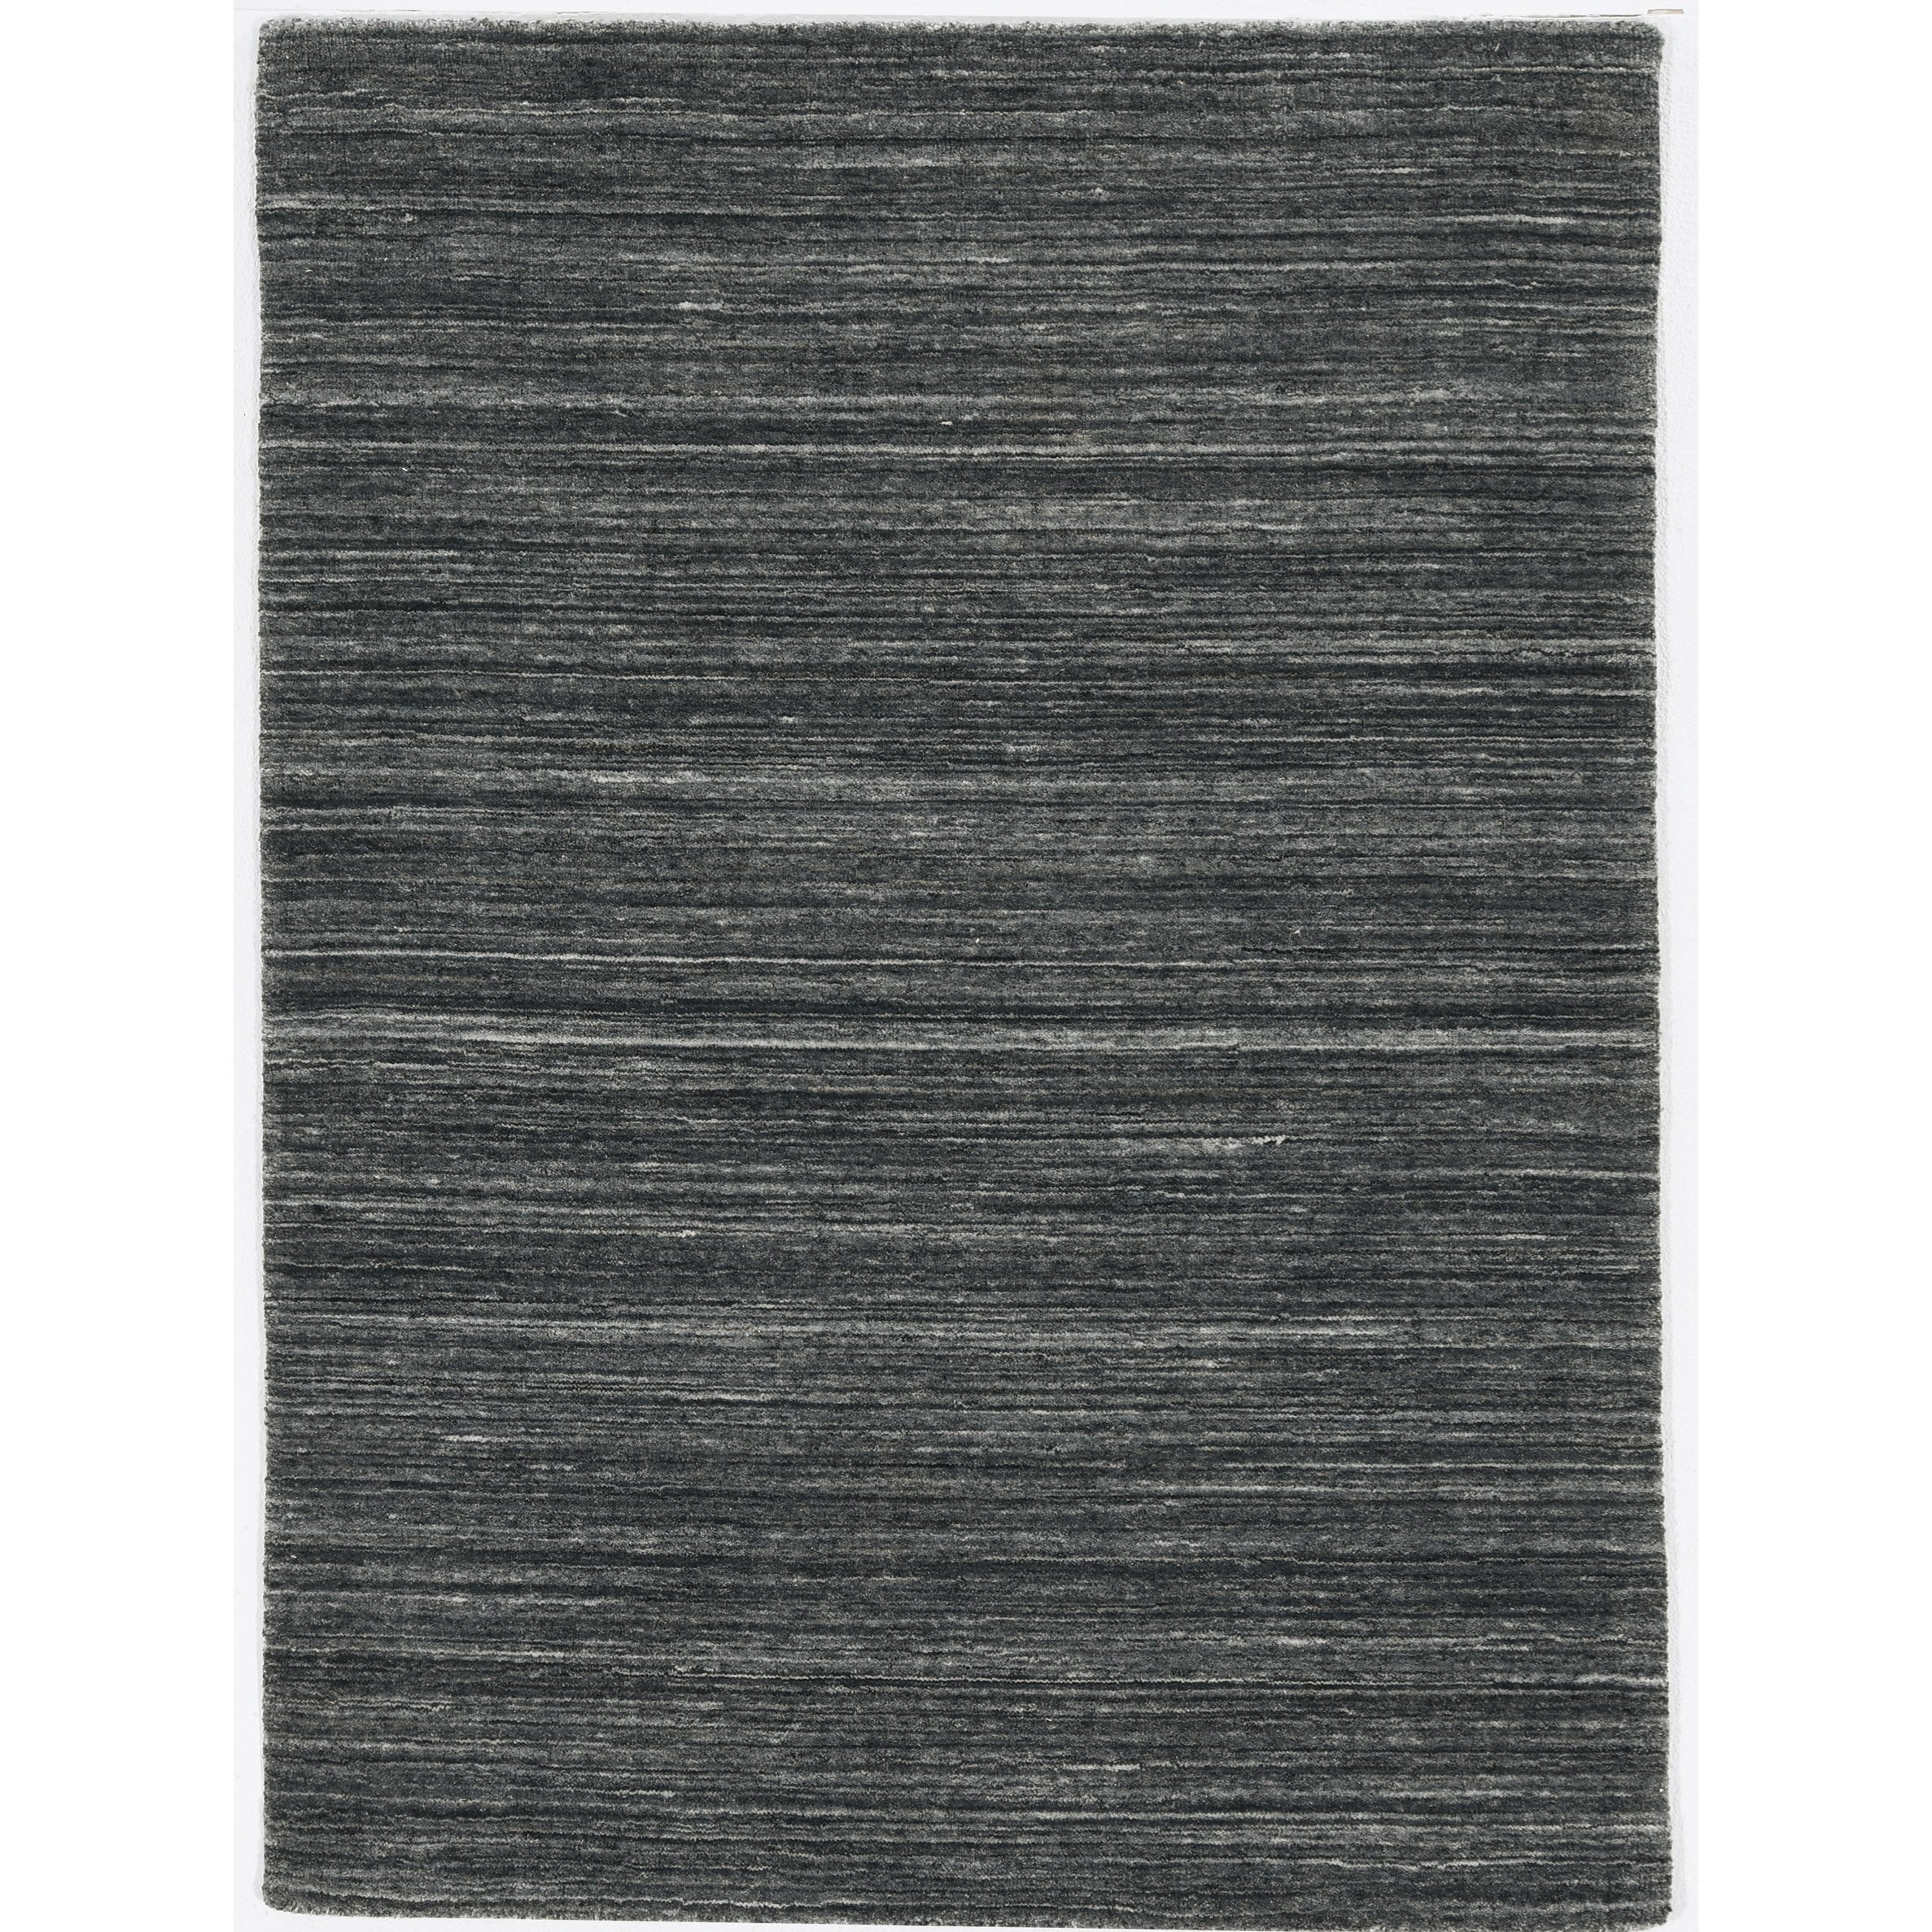 Dune 9' x 12' Charcoal Villa Rug by Kas at Zak's Home